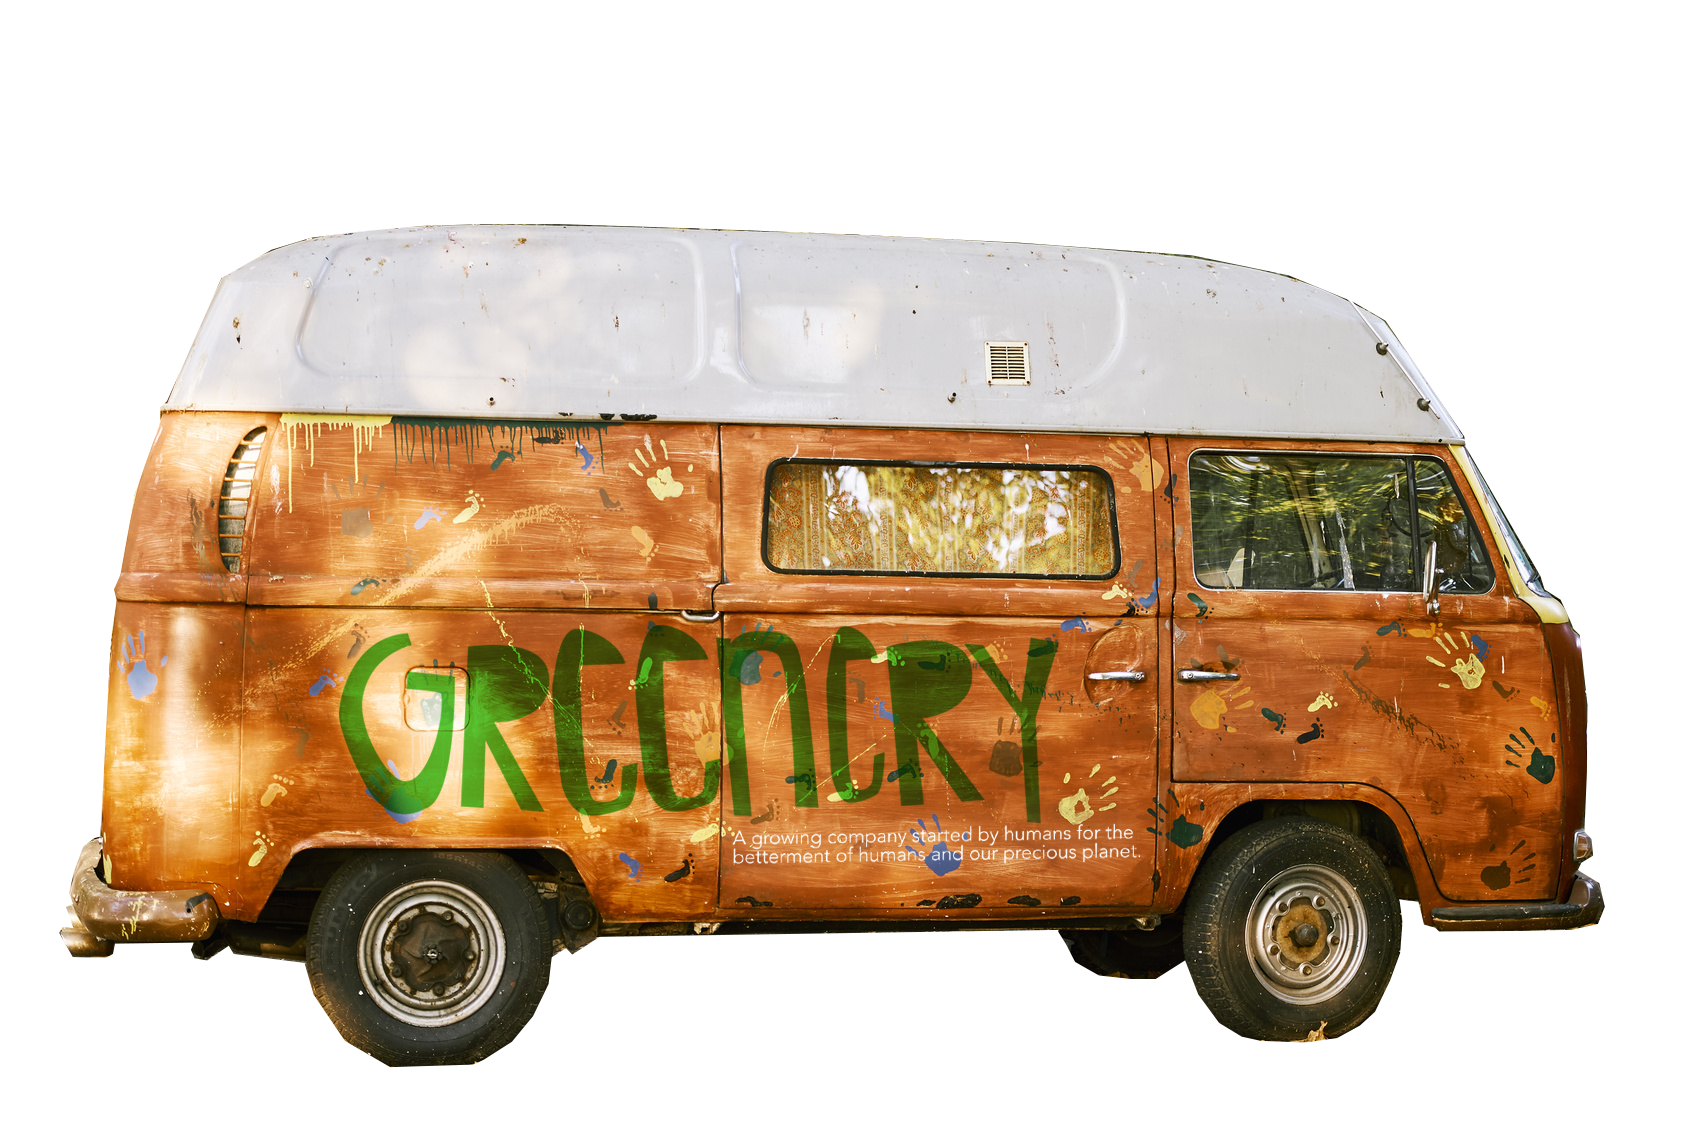 GREENERY Compost Co.